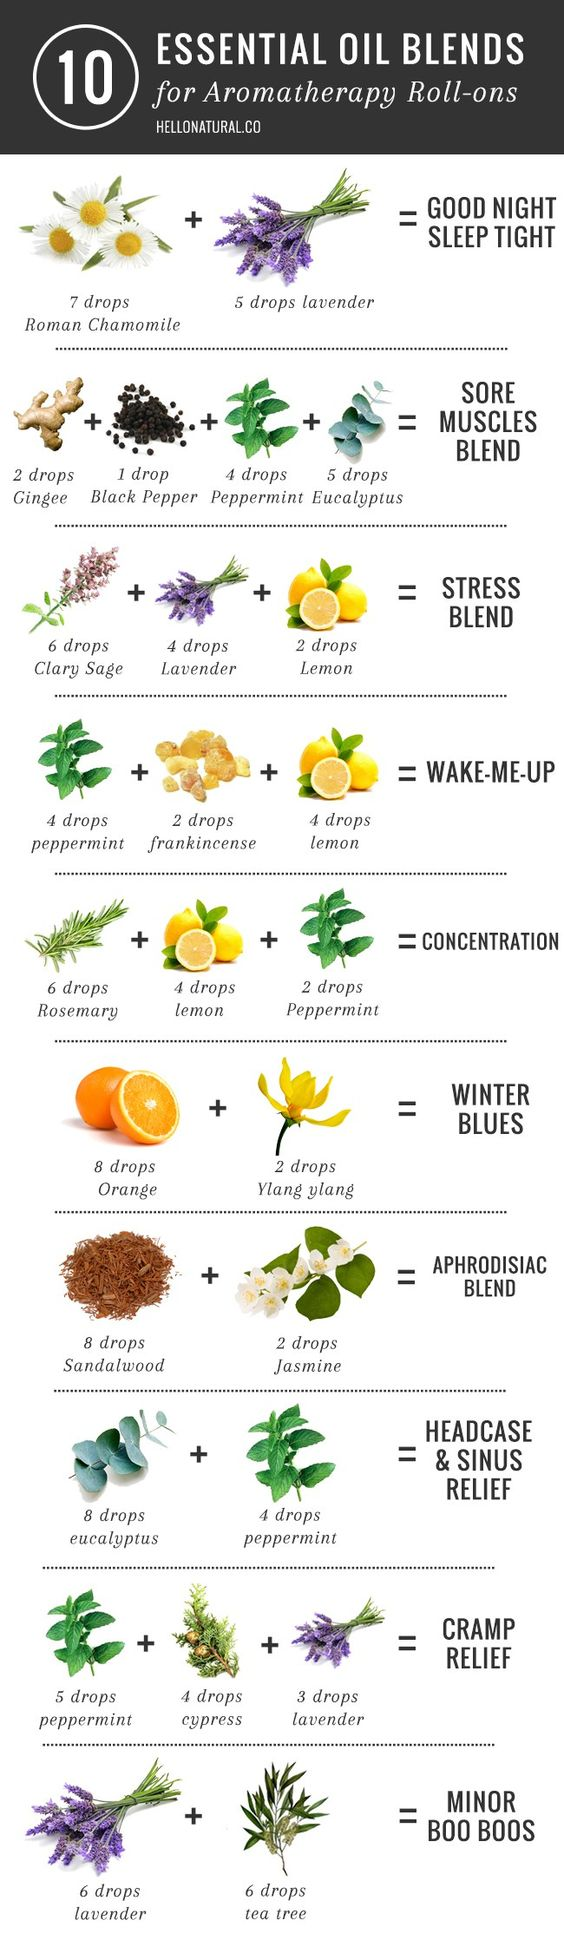 Everything you need to know to make aromatherapy roll-ons at home, plus 10 essential oil blends for all sorts of ailments.